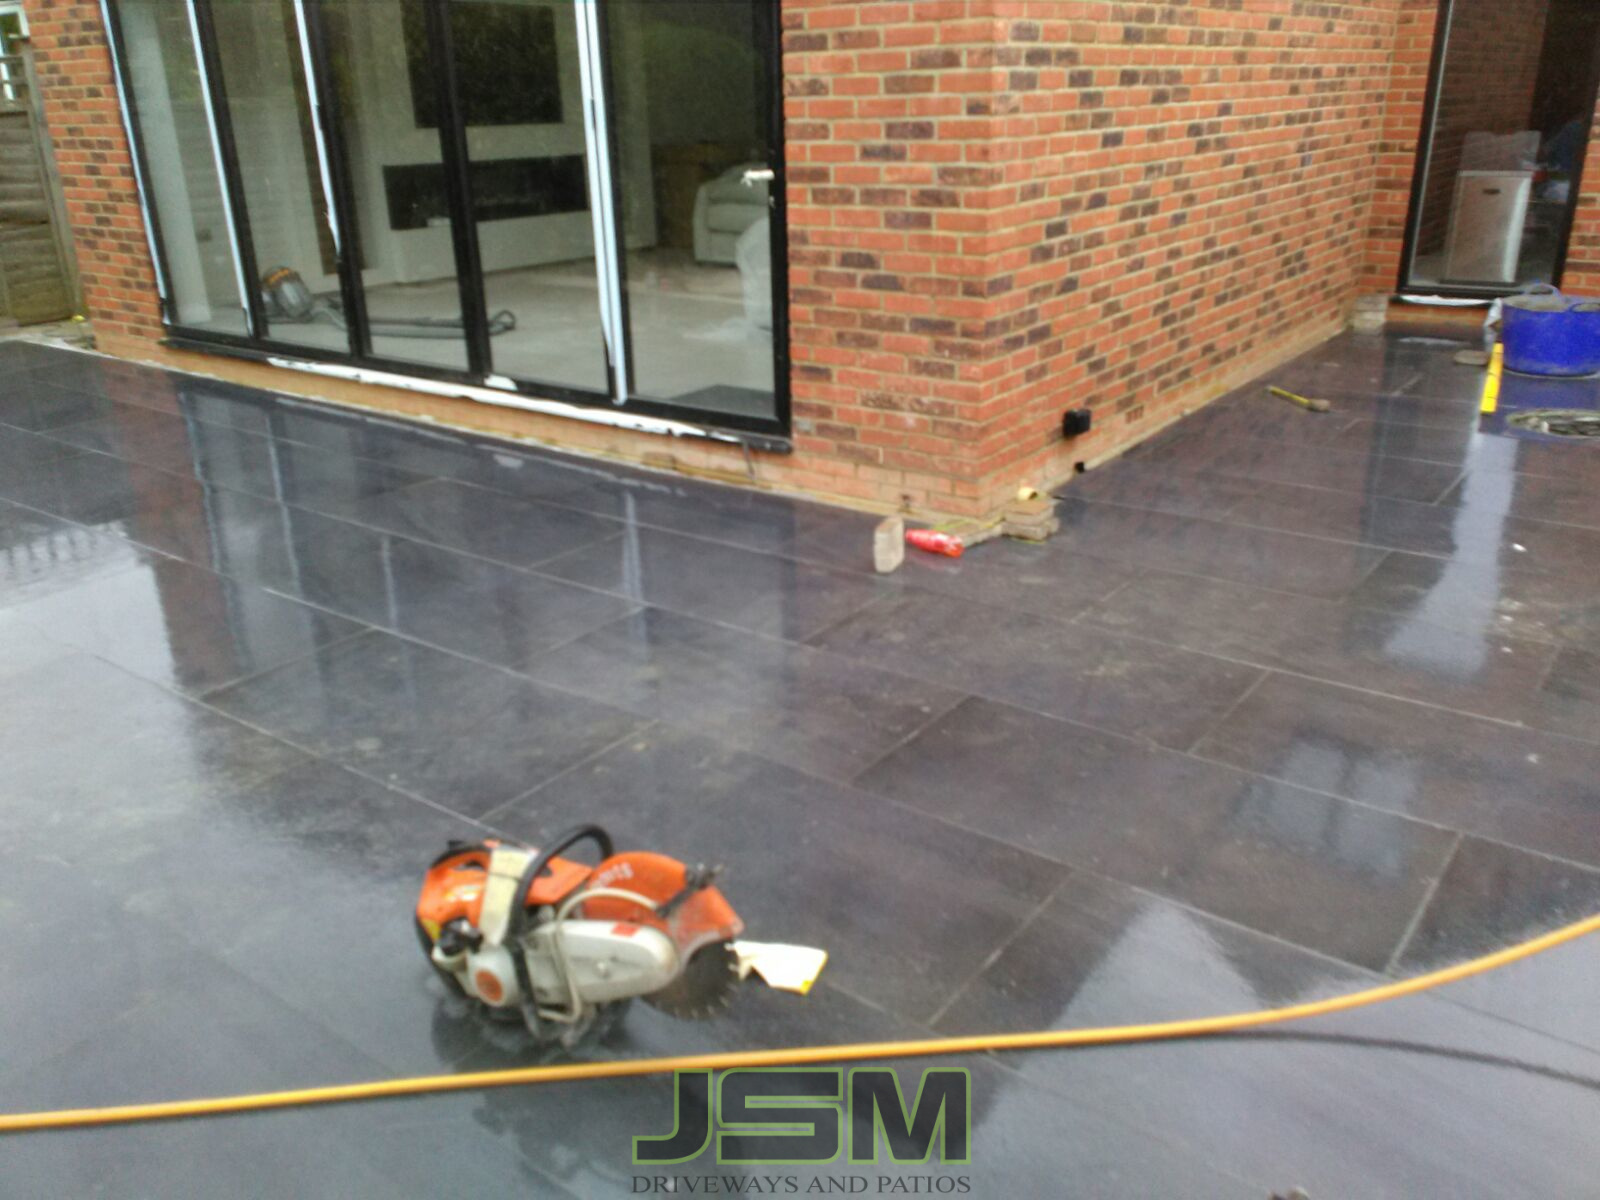 Patio Paving Company in Cold Brayfield, Milton Keynes